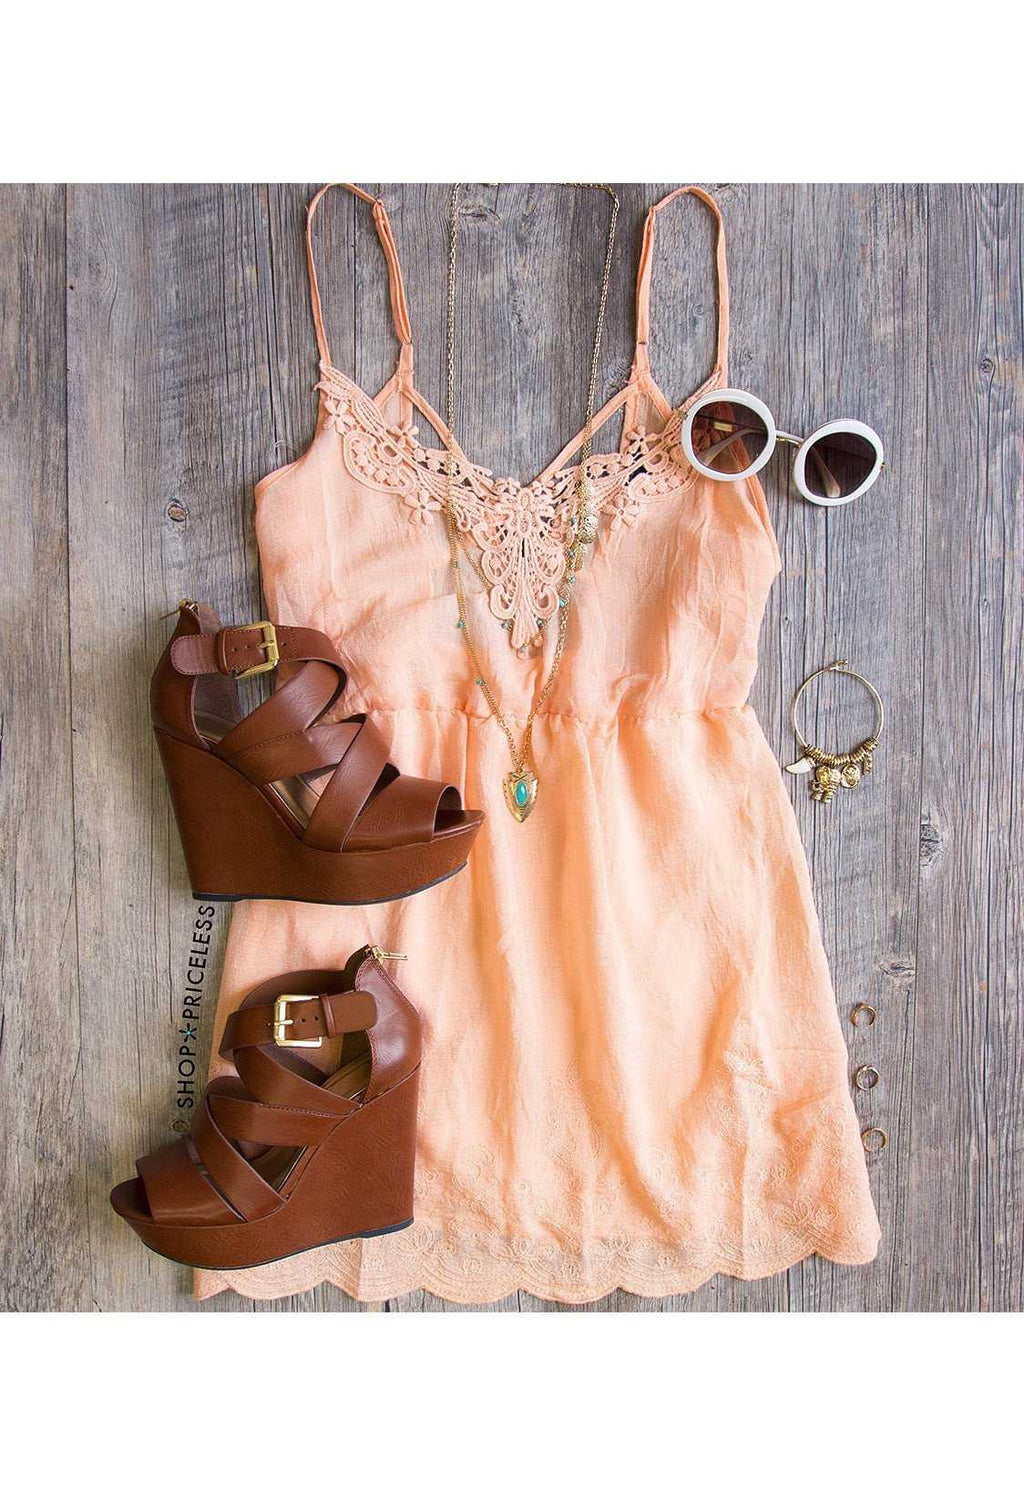 Dresses - This Summer Dress - Peach